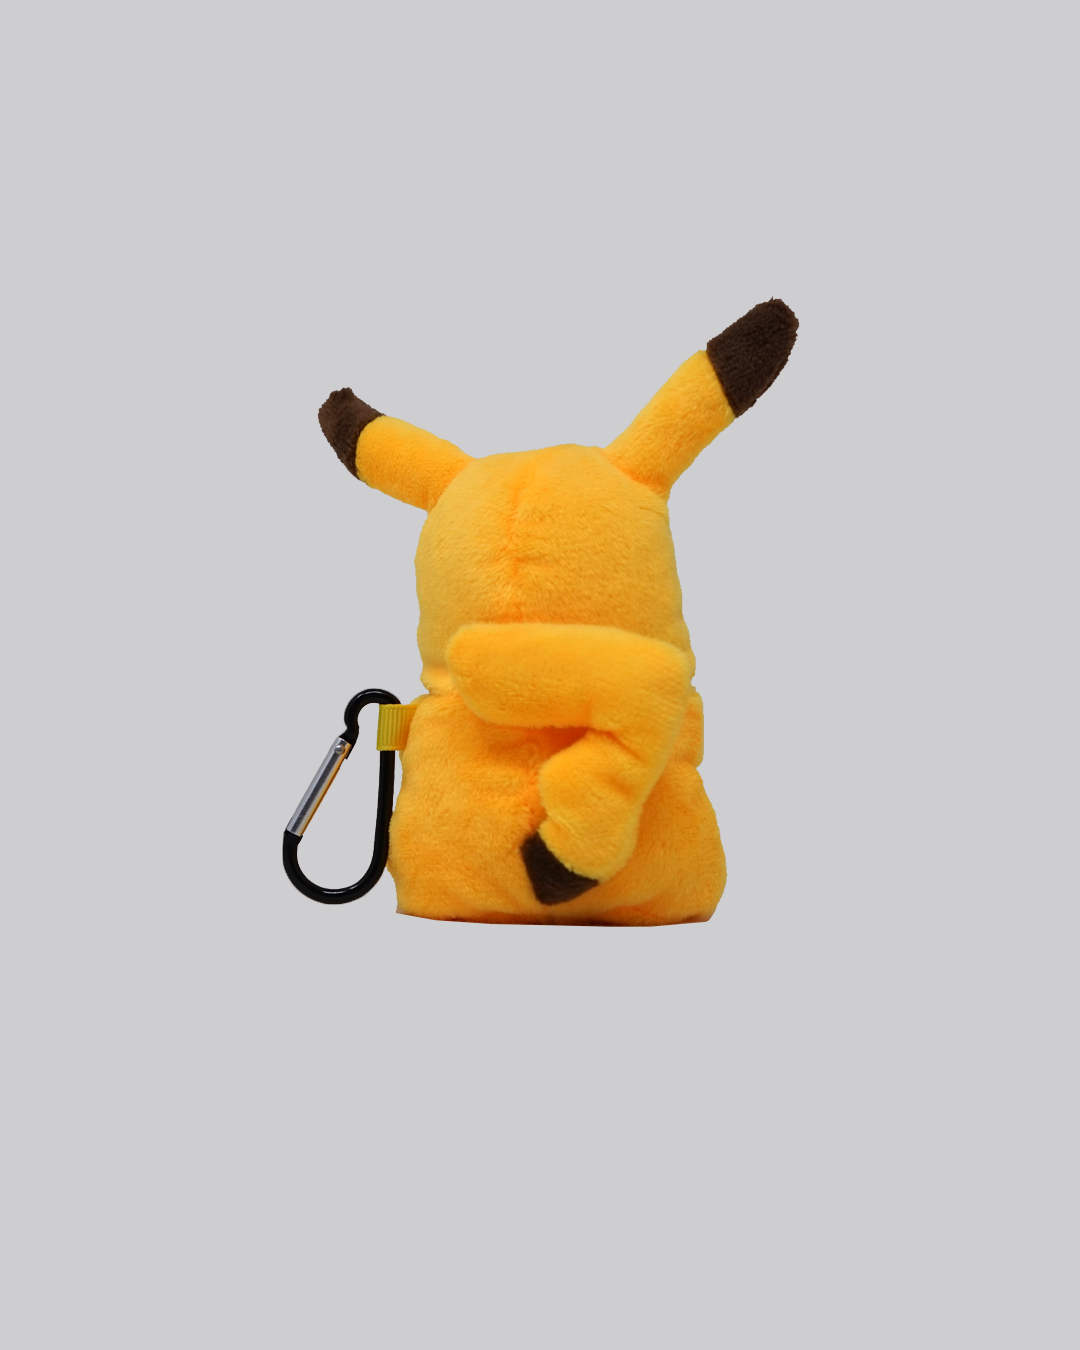 Pikachu Plush AirPods Case